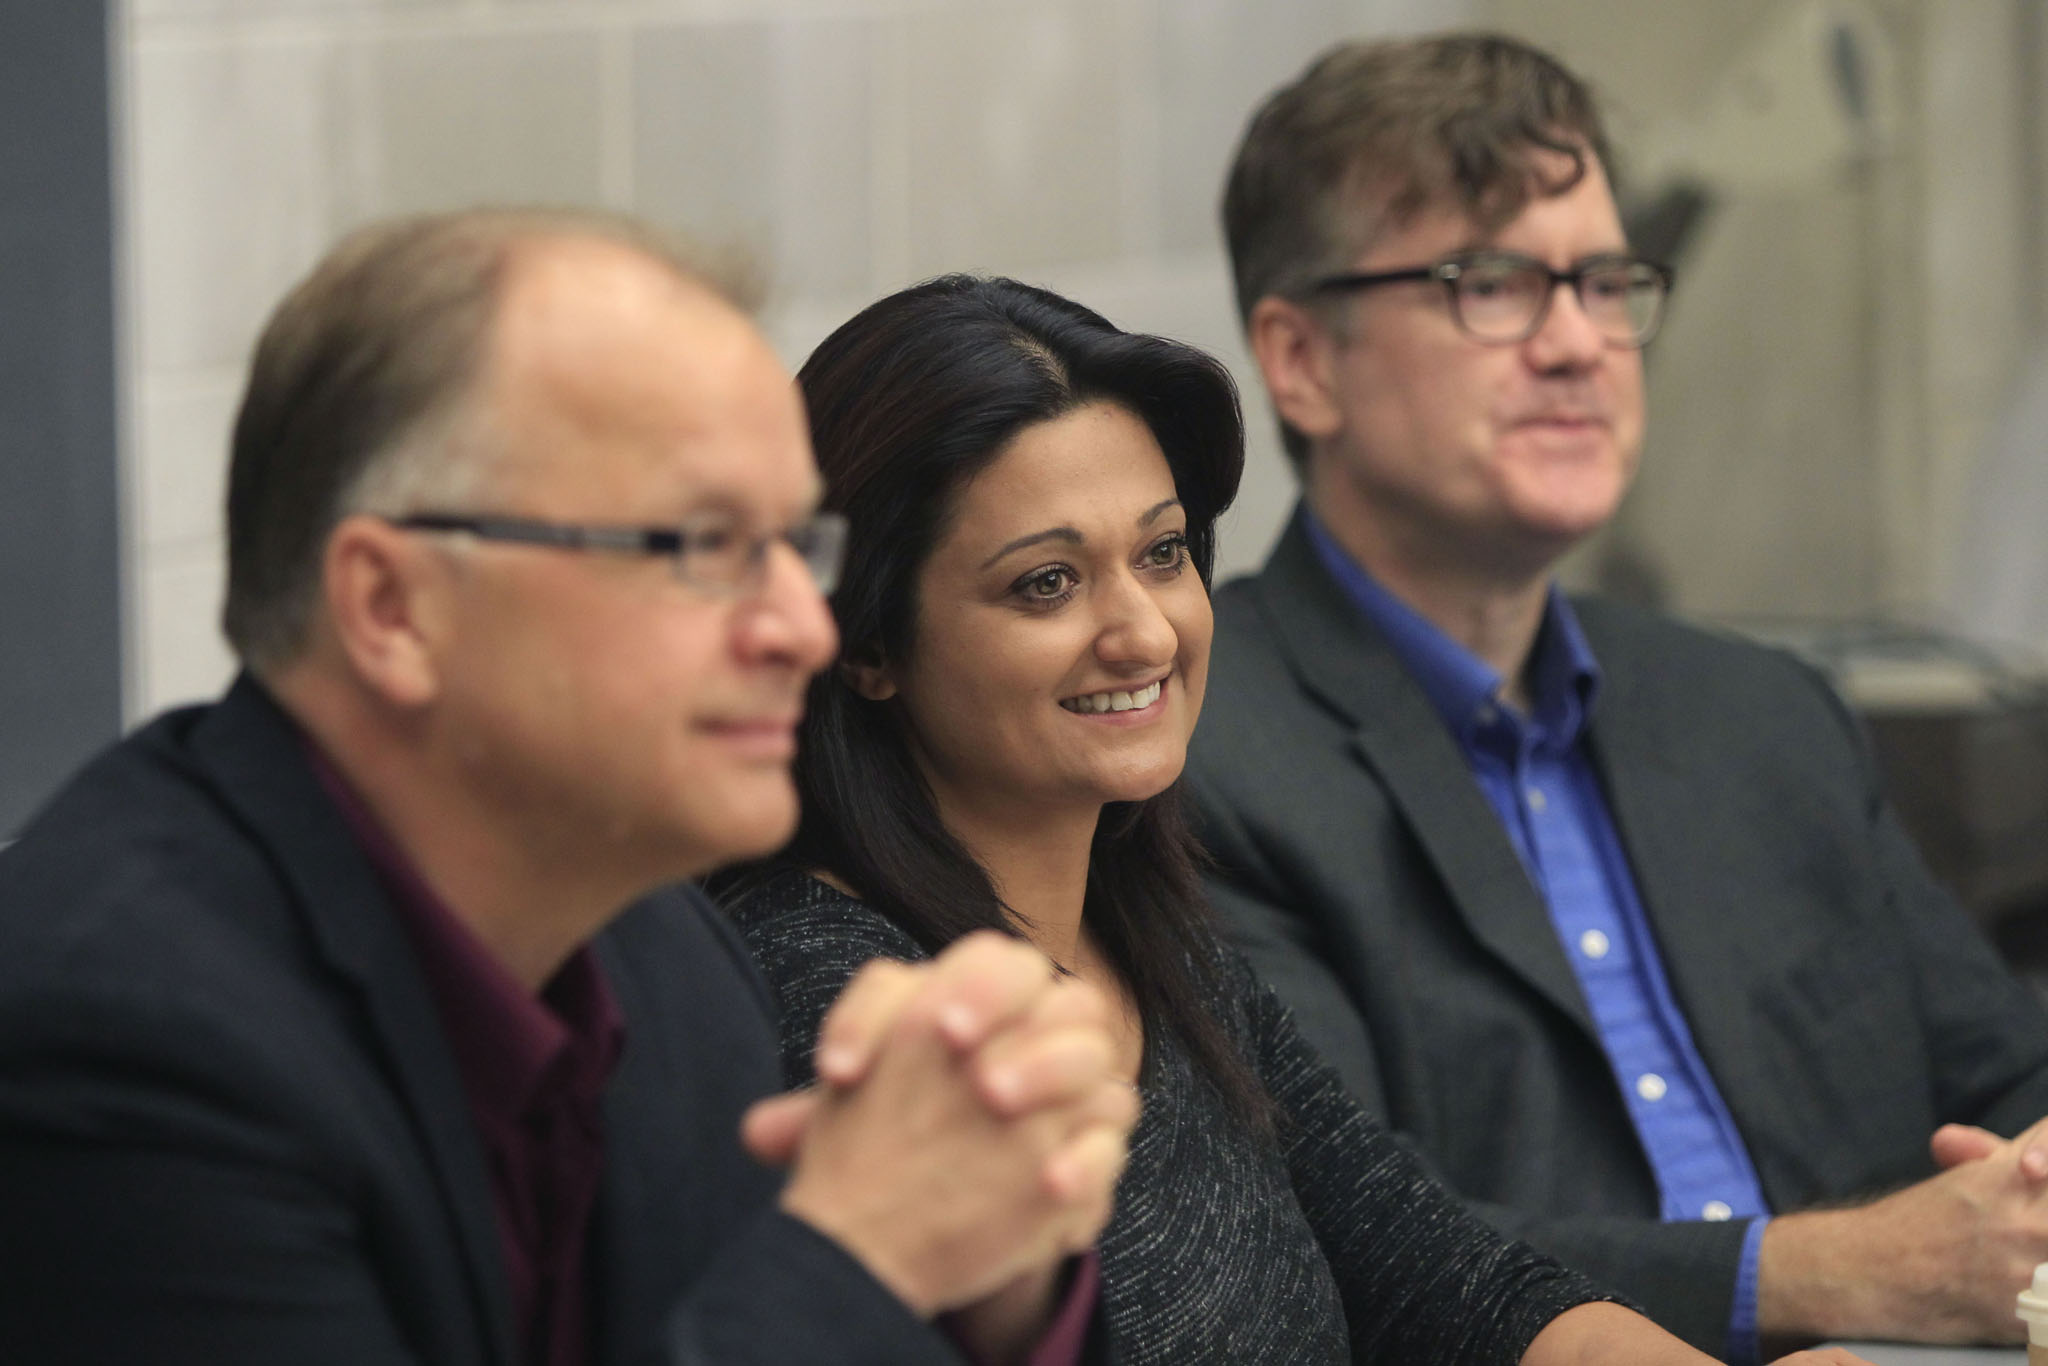 Manitoba Liberal candidates, from left, Bob Axworthy, Rana Bokhari and Dougald Lamont at the U of W today.